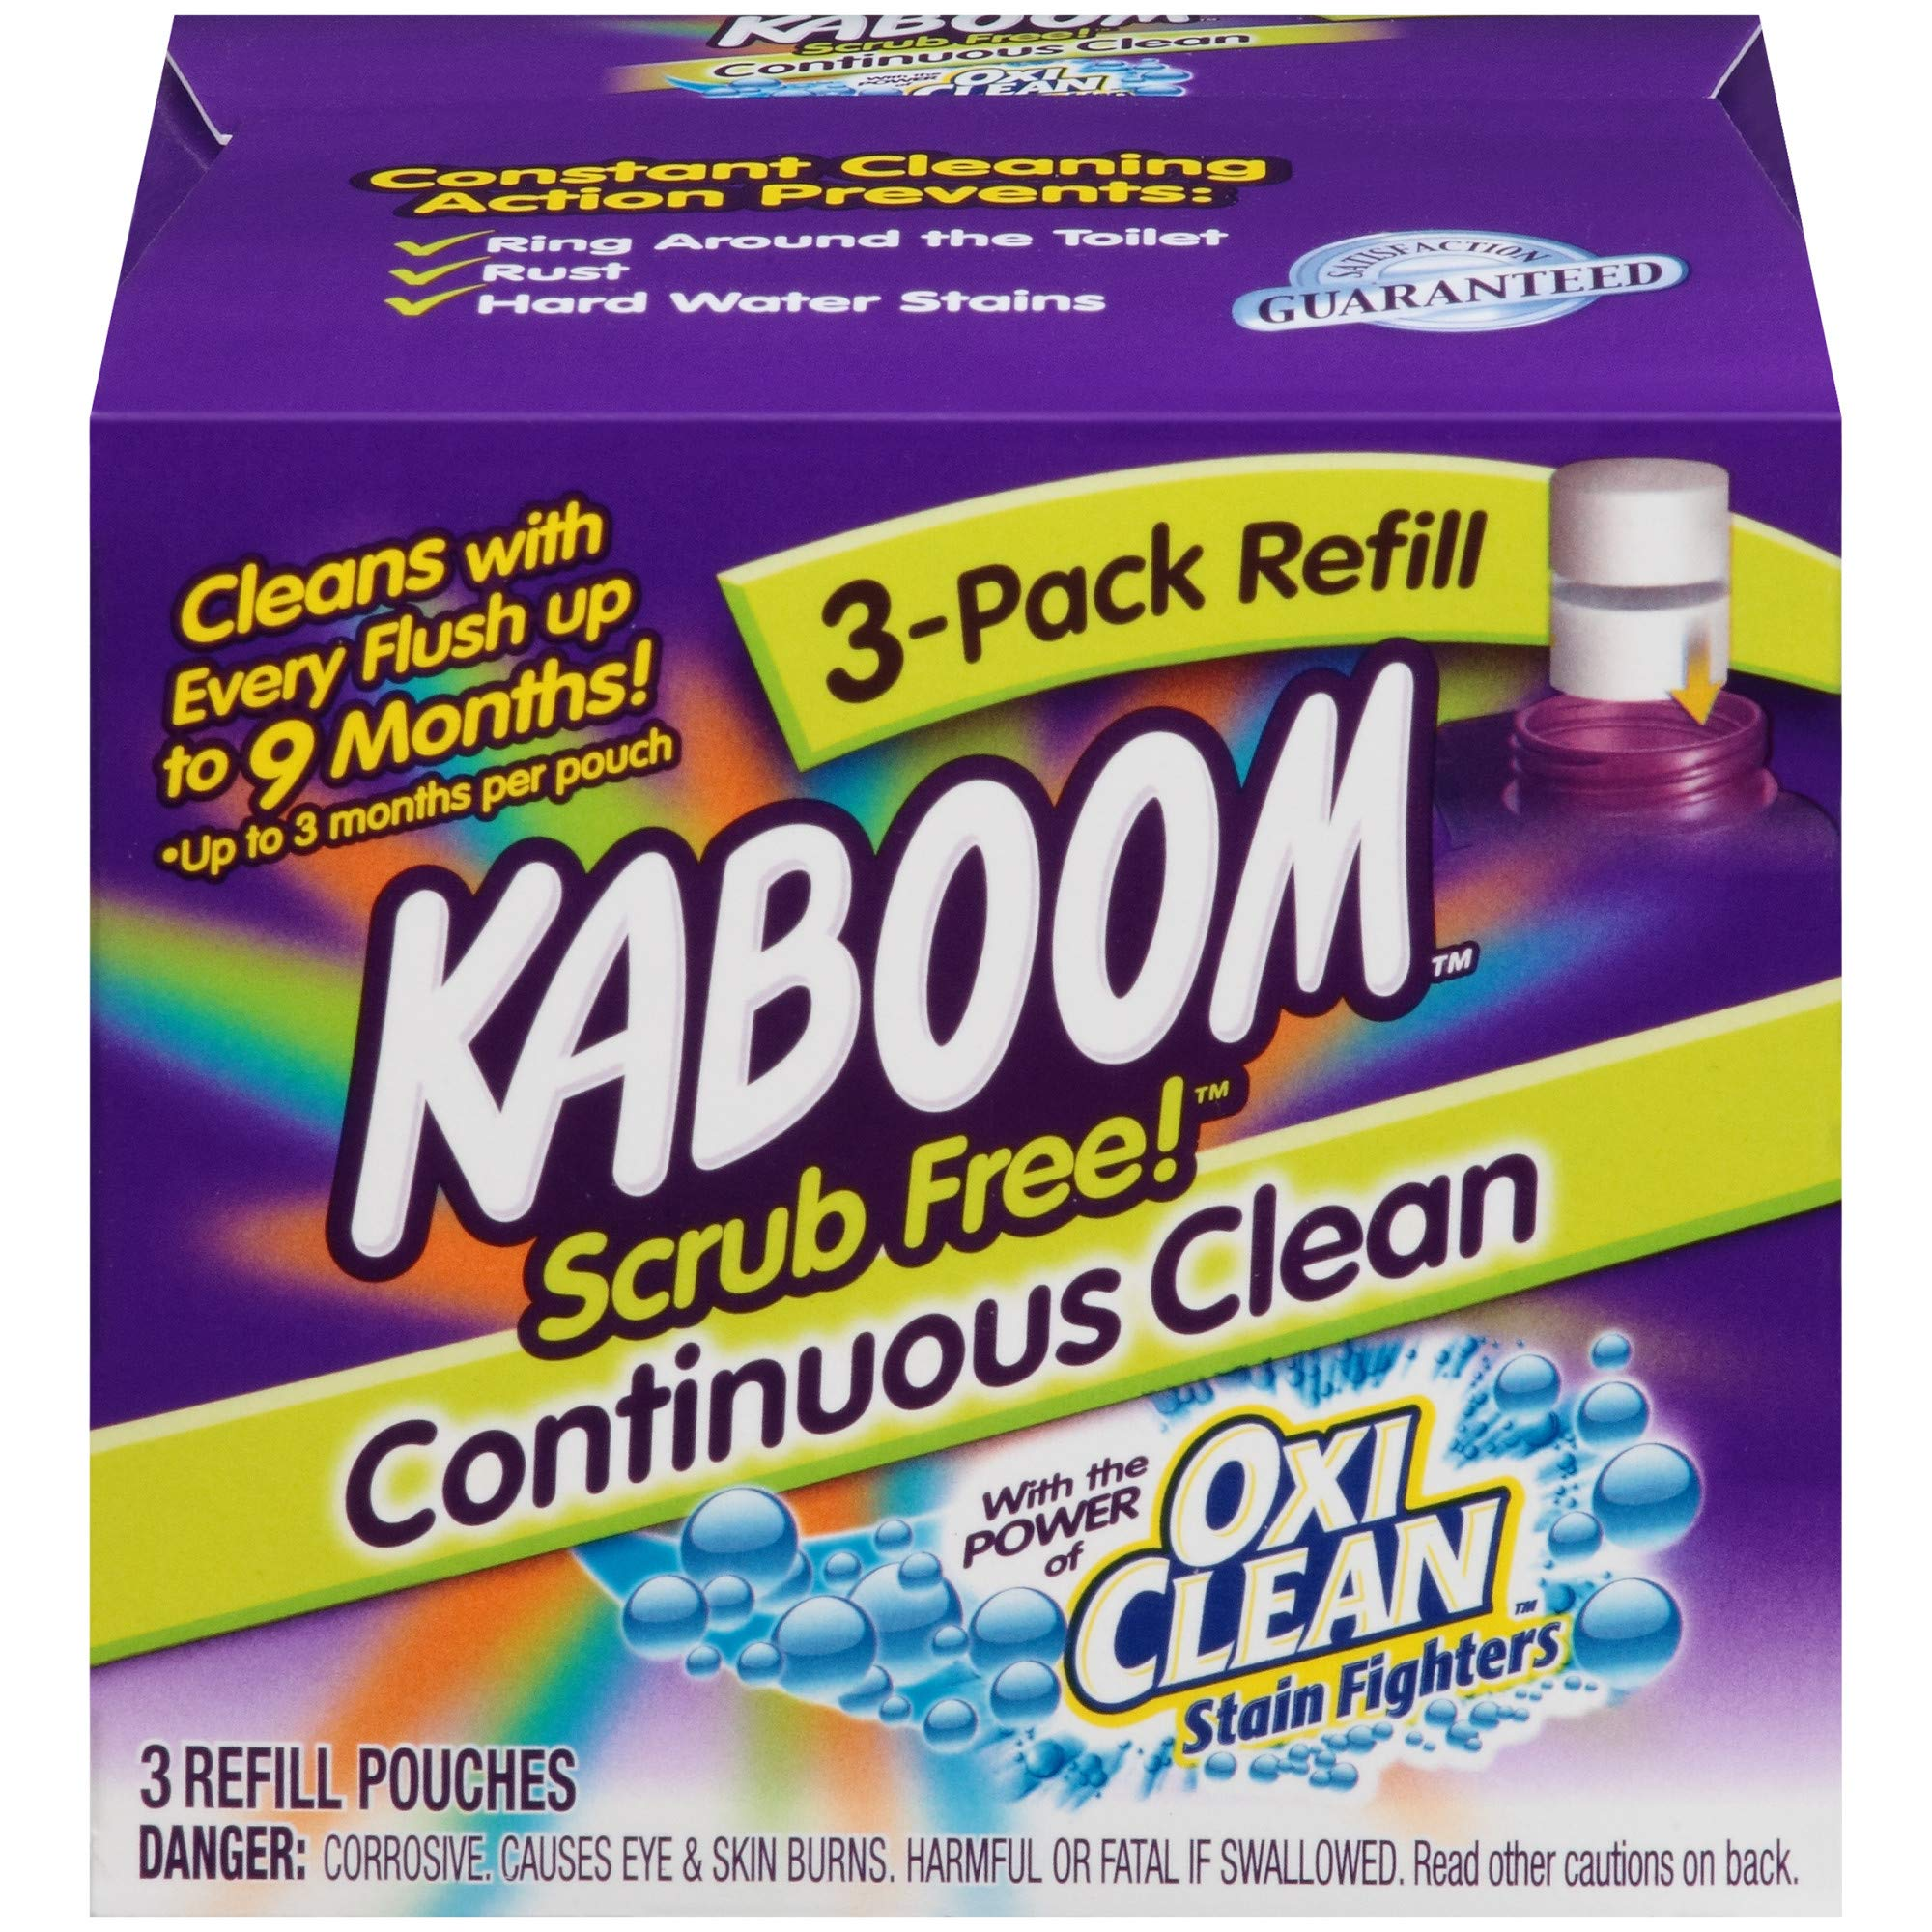 Kaboom Scrub Free! Continuous Clean with OxiClean 3-Pack Refill by Kaboom